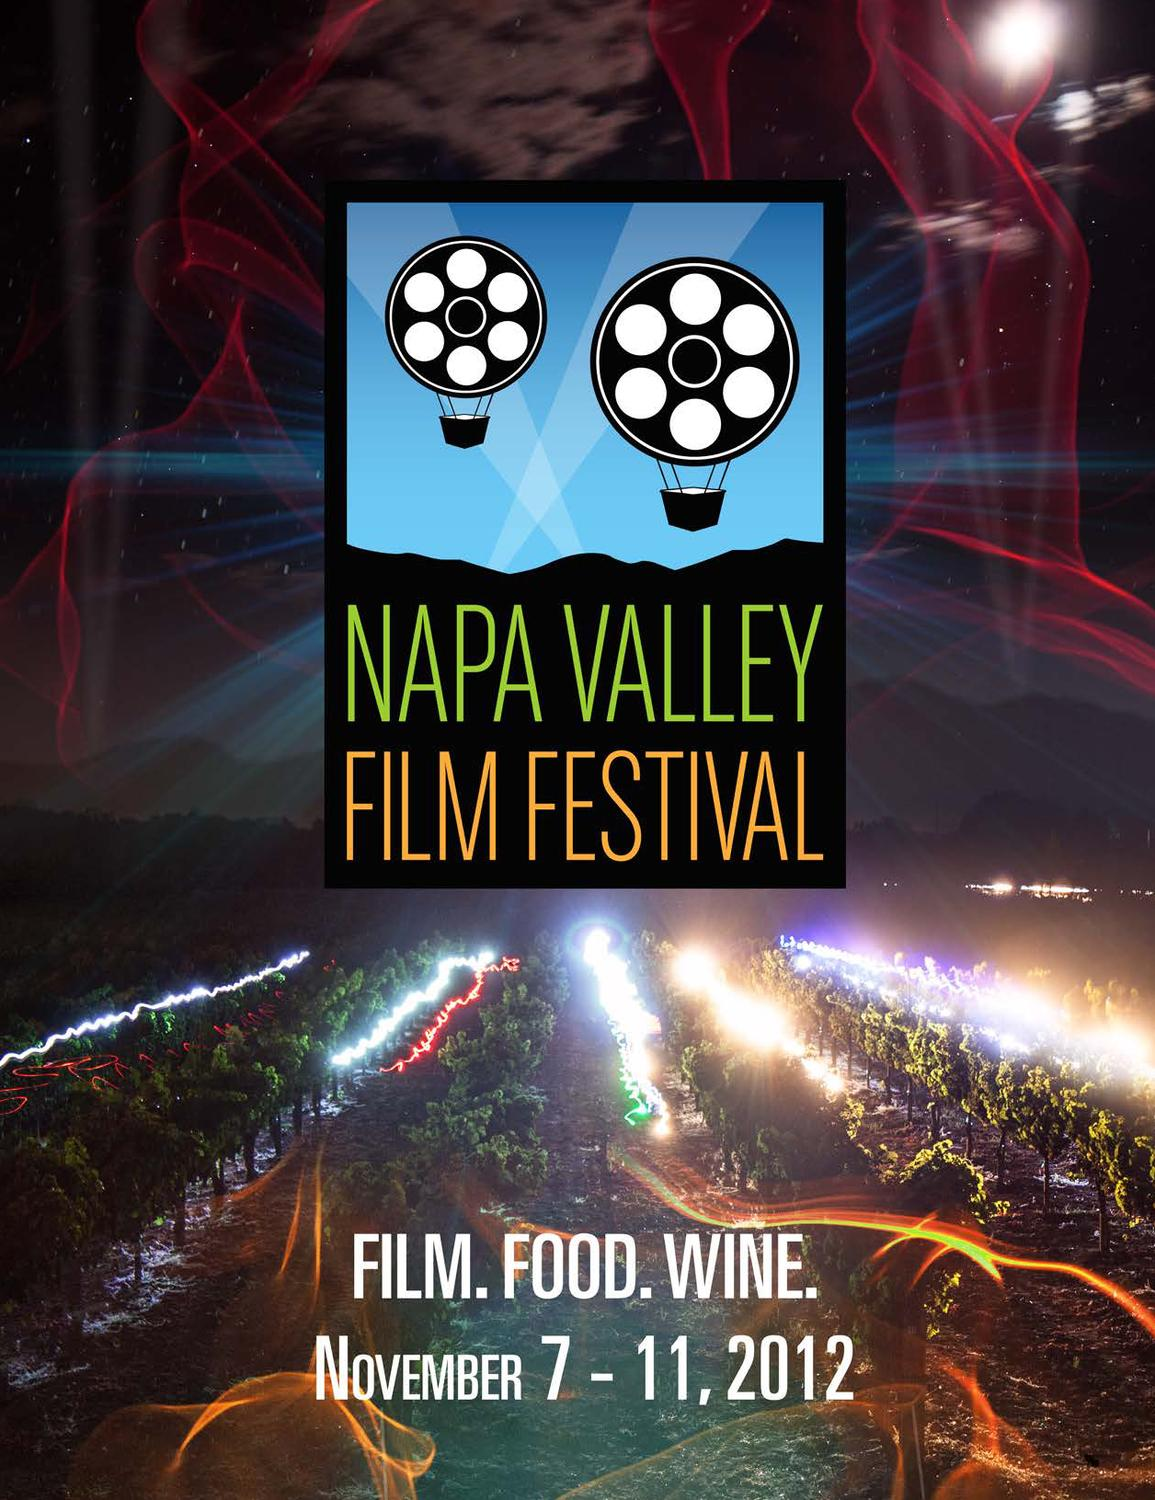 25cdbc80996c Napa Valley Film Festival 2012 Official Guide by Napa Valley Film Festival  - issuu